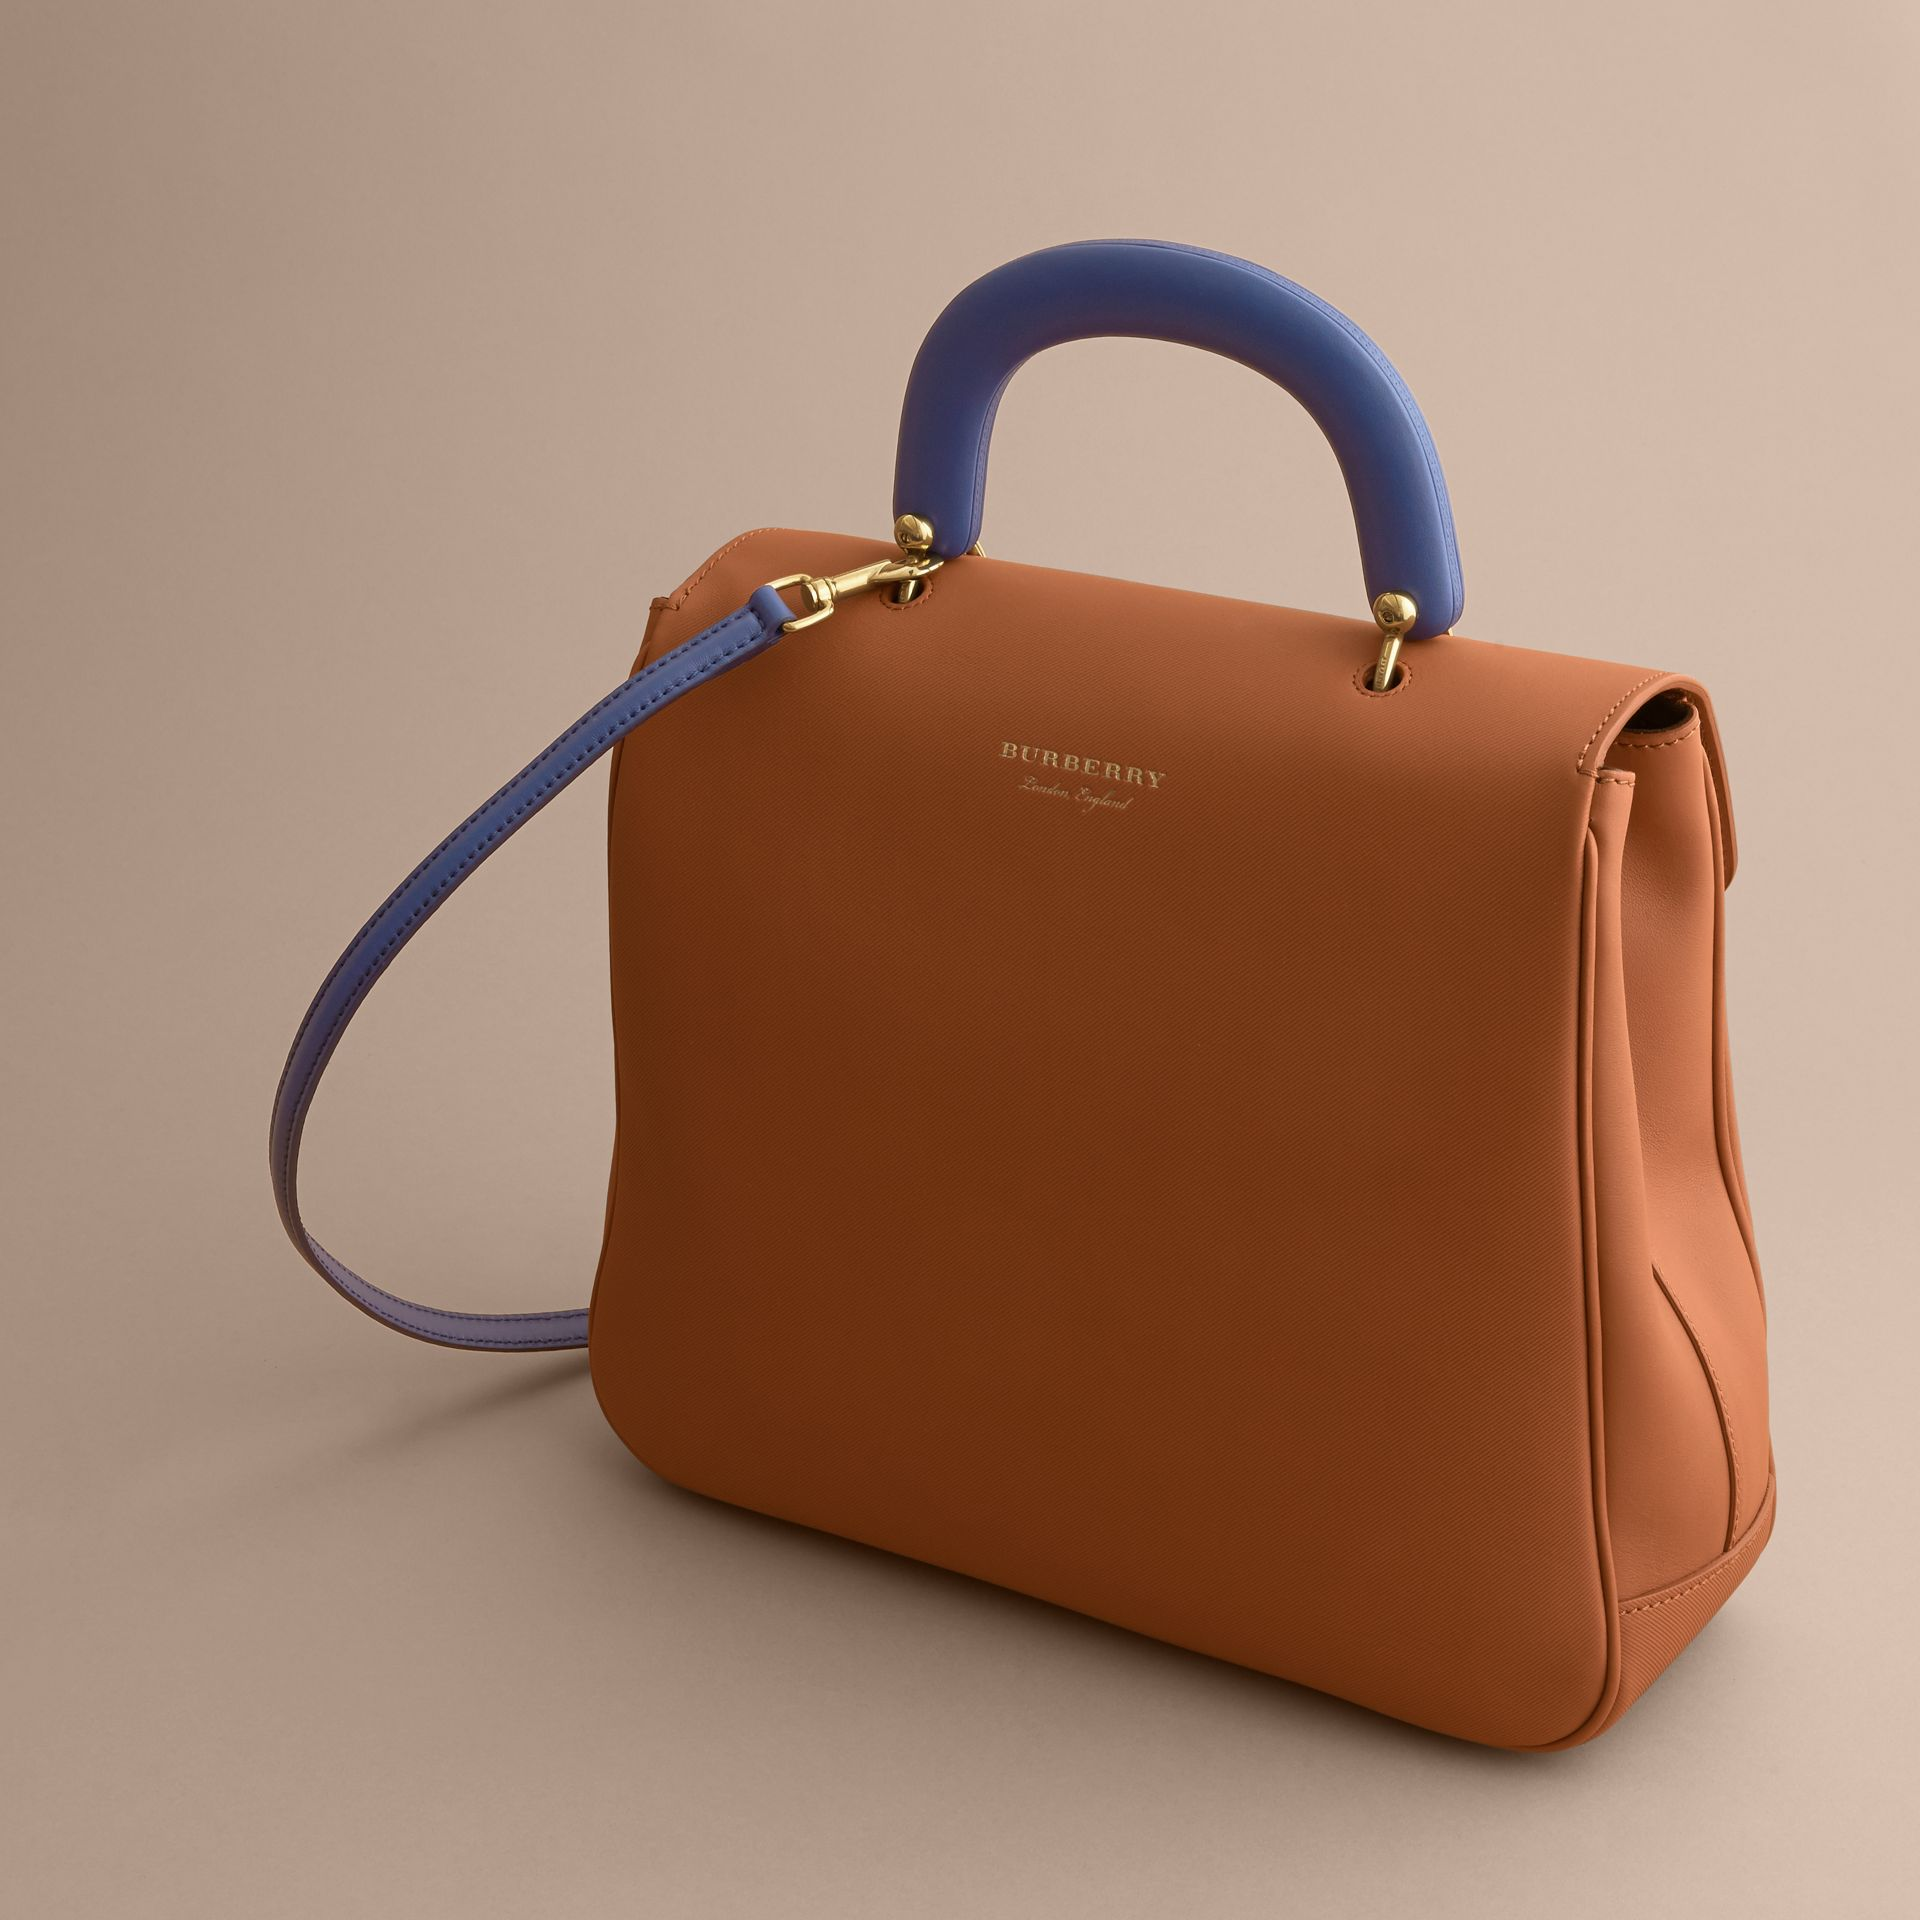 The Large DK88 Top Handle Bag in Bright Toffee - Women | Burberry - gallery image 4